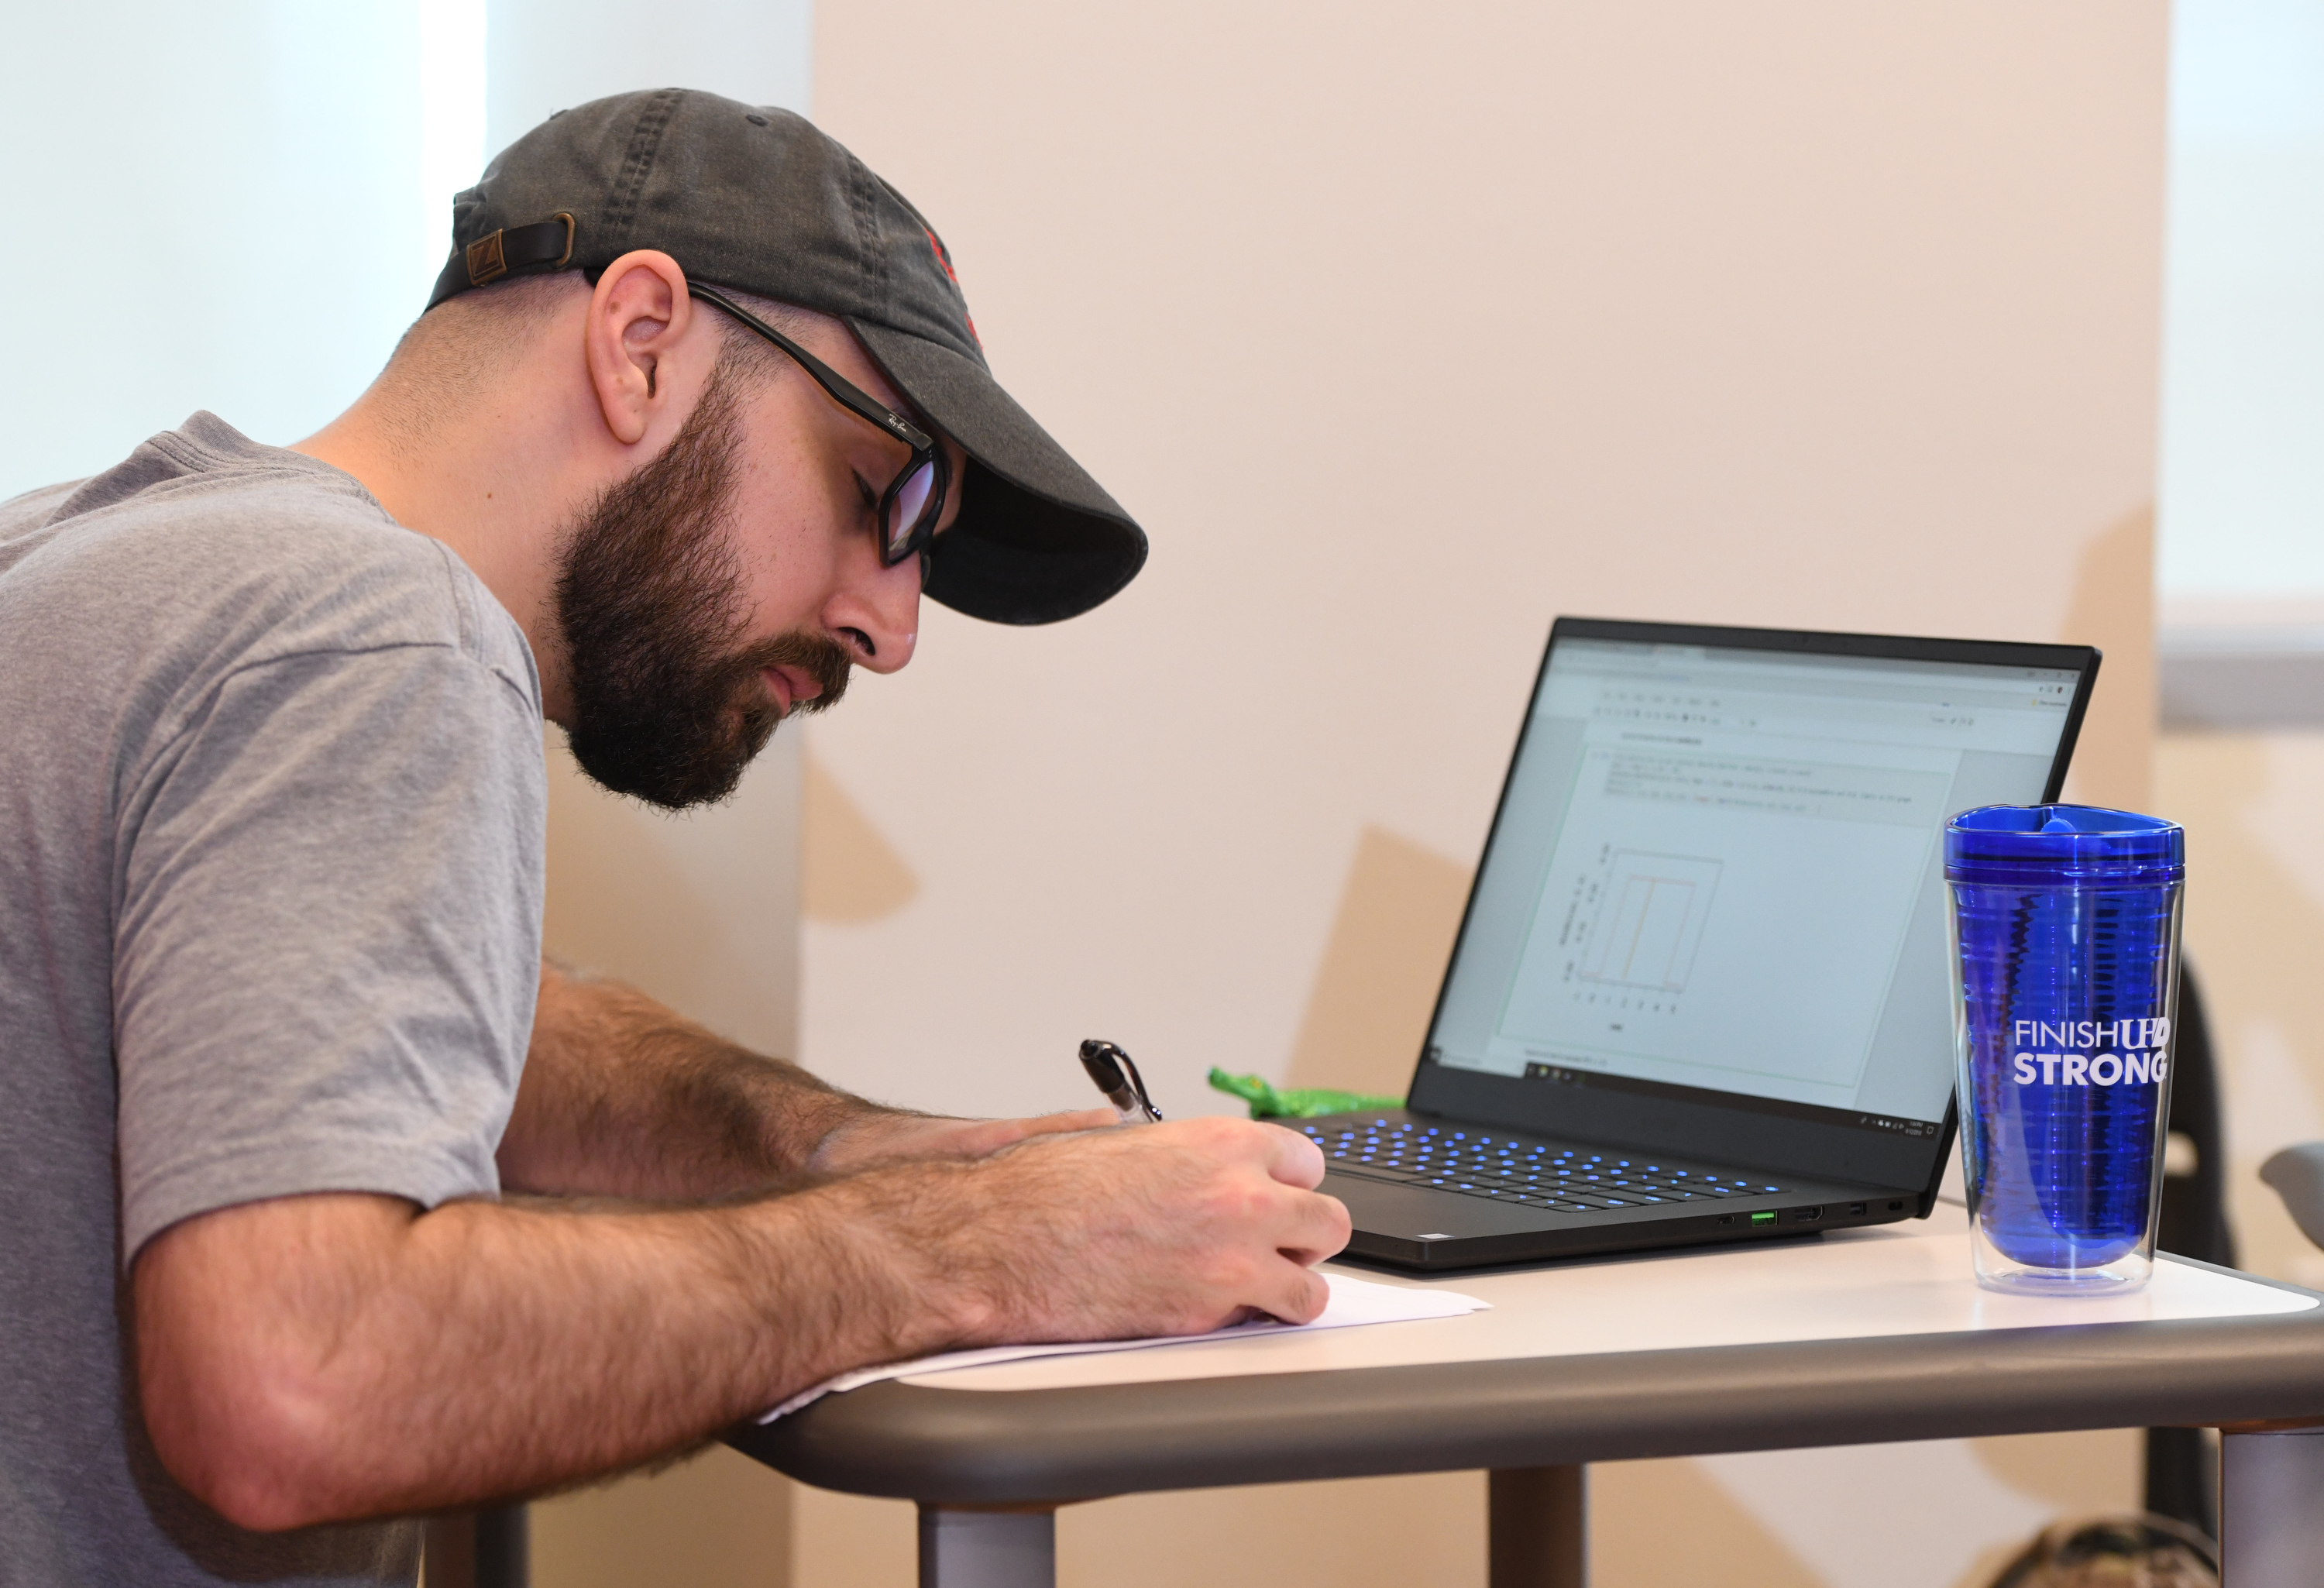 Due to complications as a result of the coronavirus, more students need help with tuition payments, so higher ed leaders are stepping up by providing tuition scholarships, free tuition for online courses and creating other tuition program initiatives.